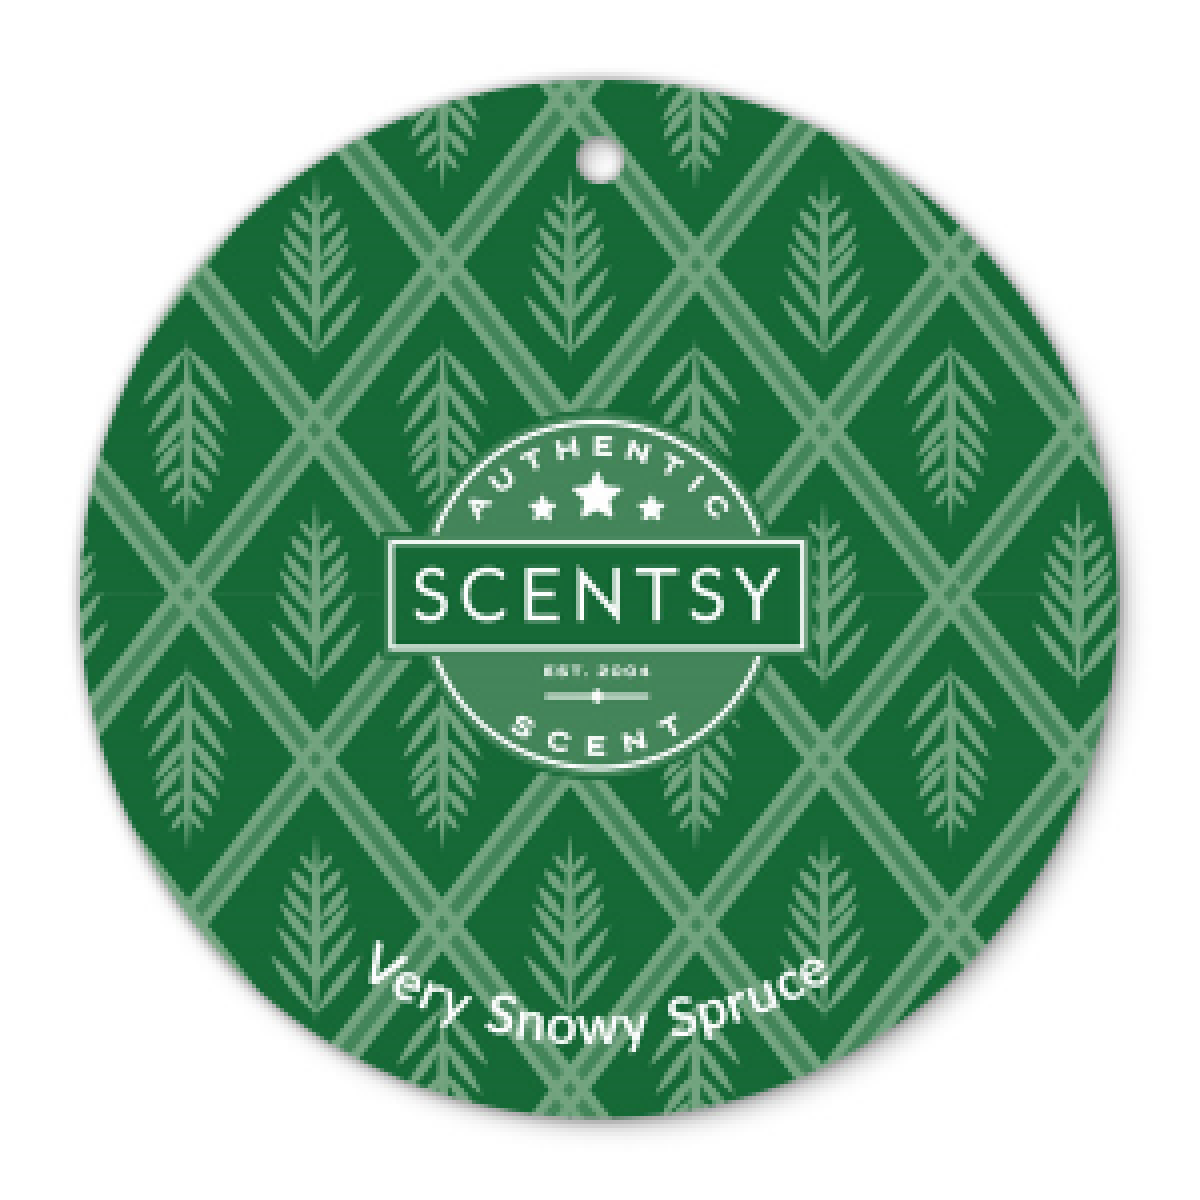 Very Snowy Spruce Scent Circle Scentsy Online Store New Authentic Fragrance Products